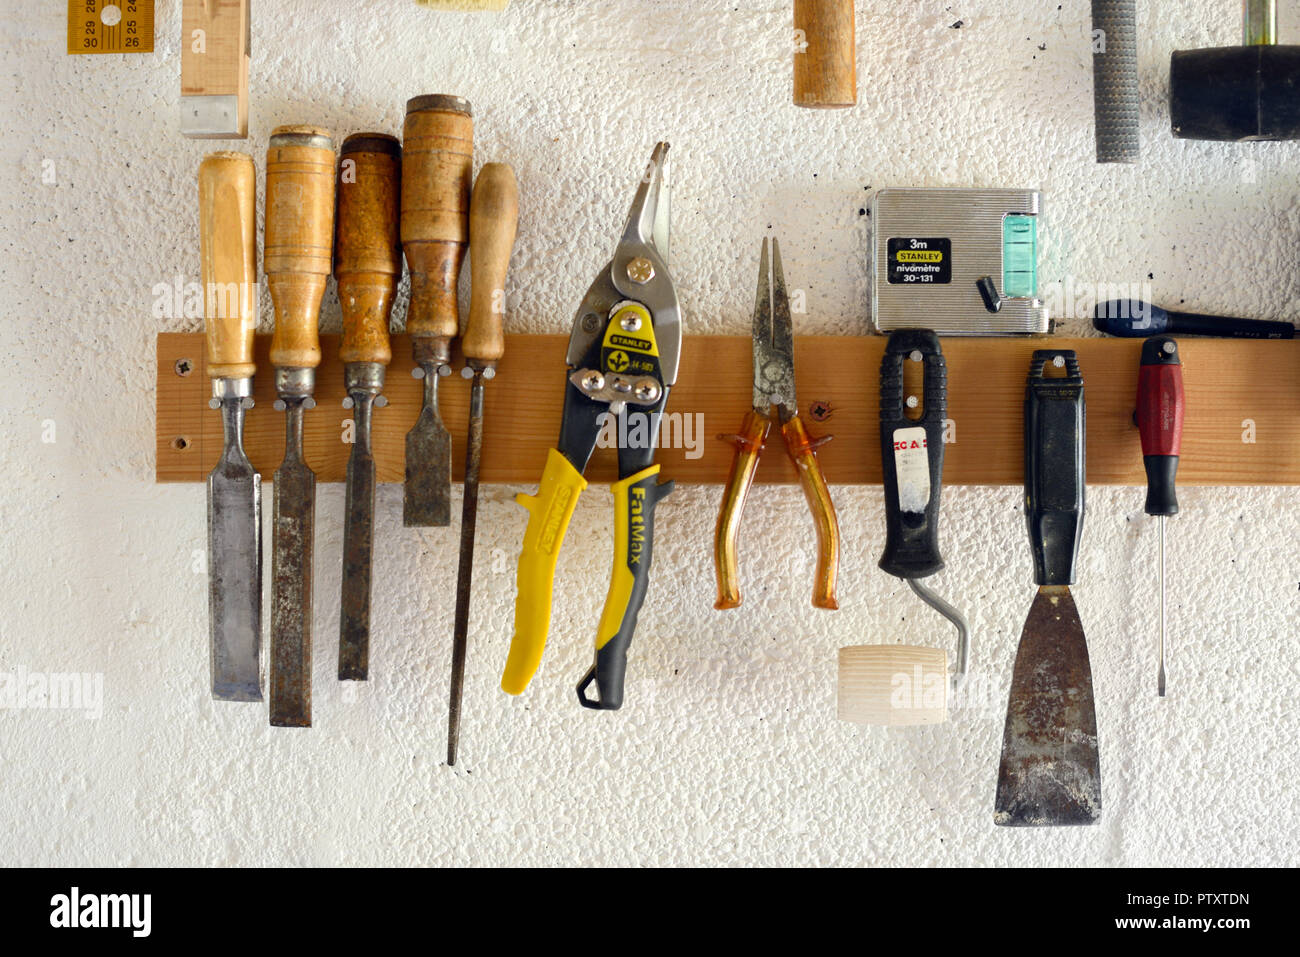 Woodworking Tools & Hand Tools including Chisels and Pliers Hanging in Workshop or Garage Wall-Mounted Tool Rack - Stock Image